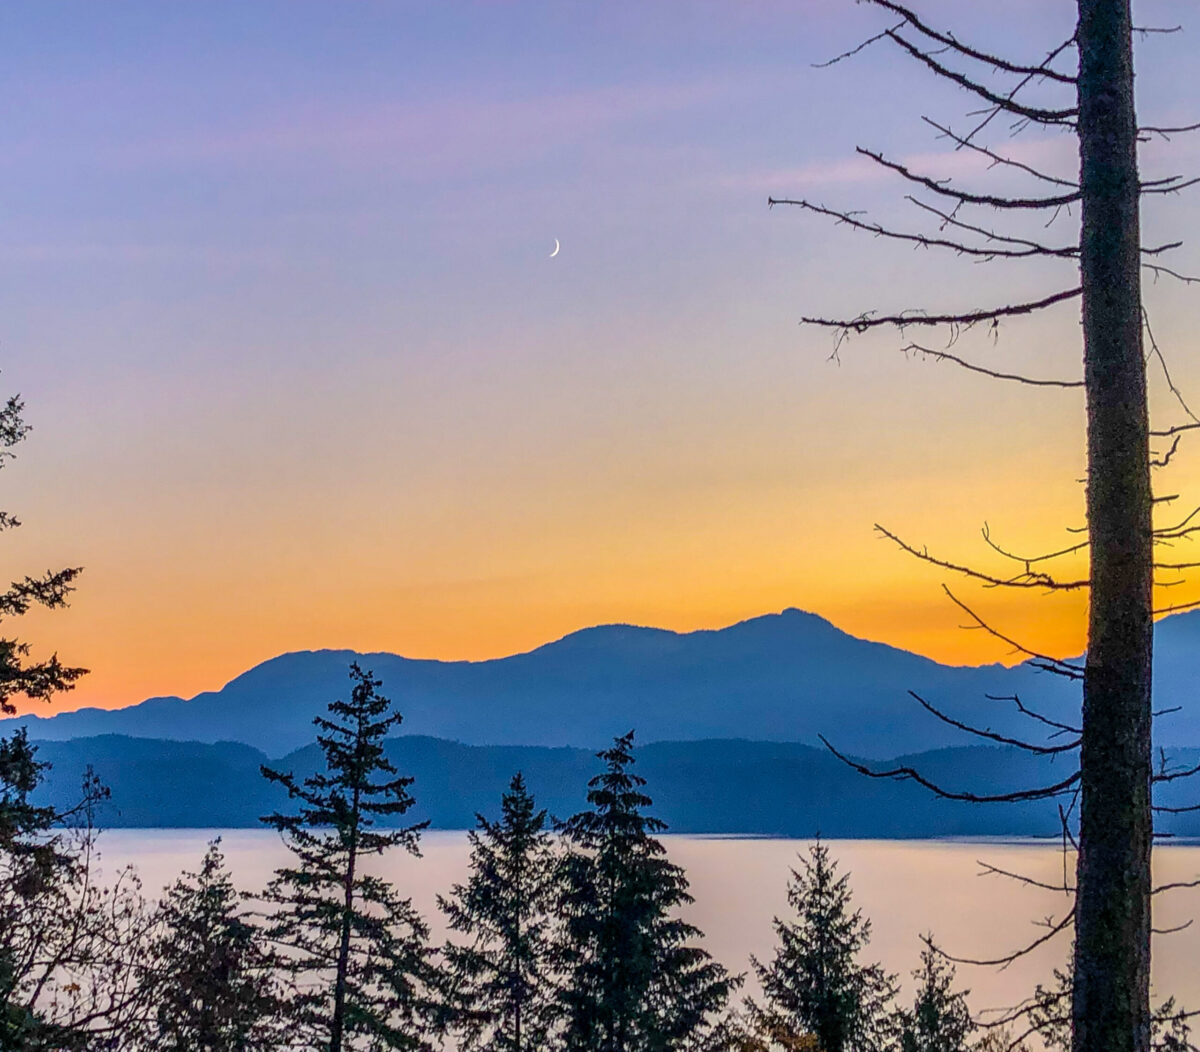 sunset view of Harrison Lake with mountains